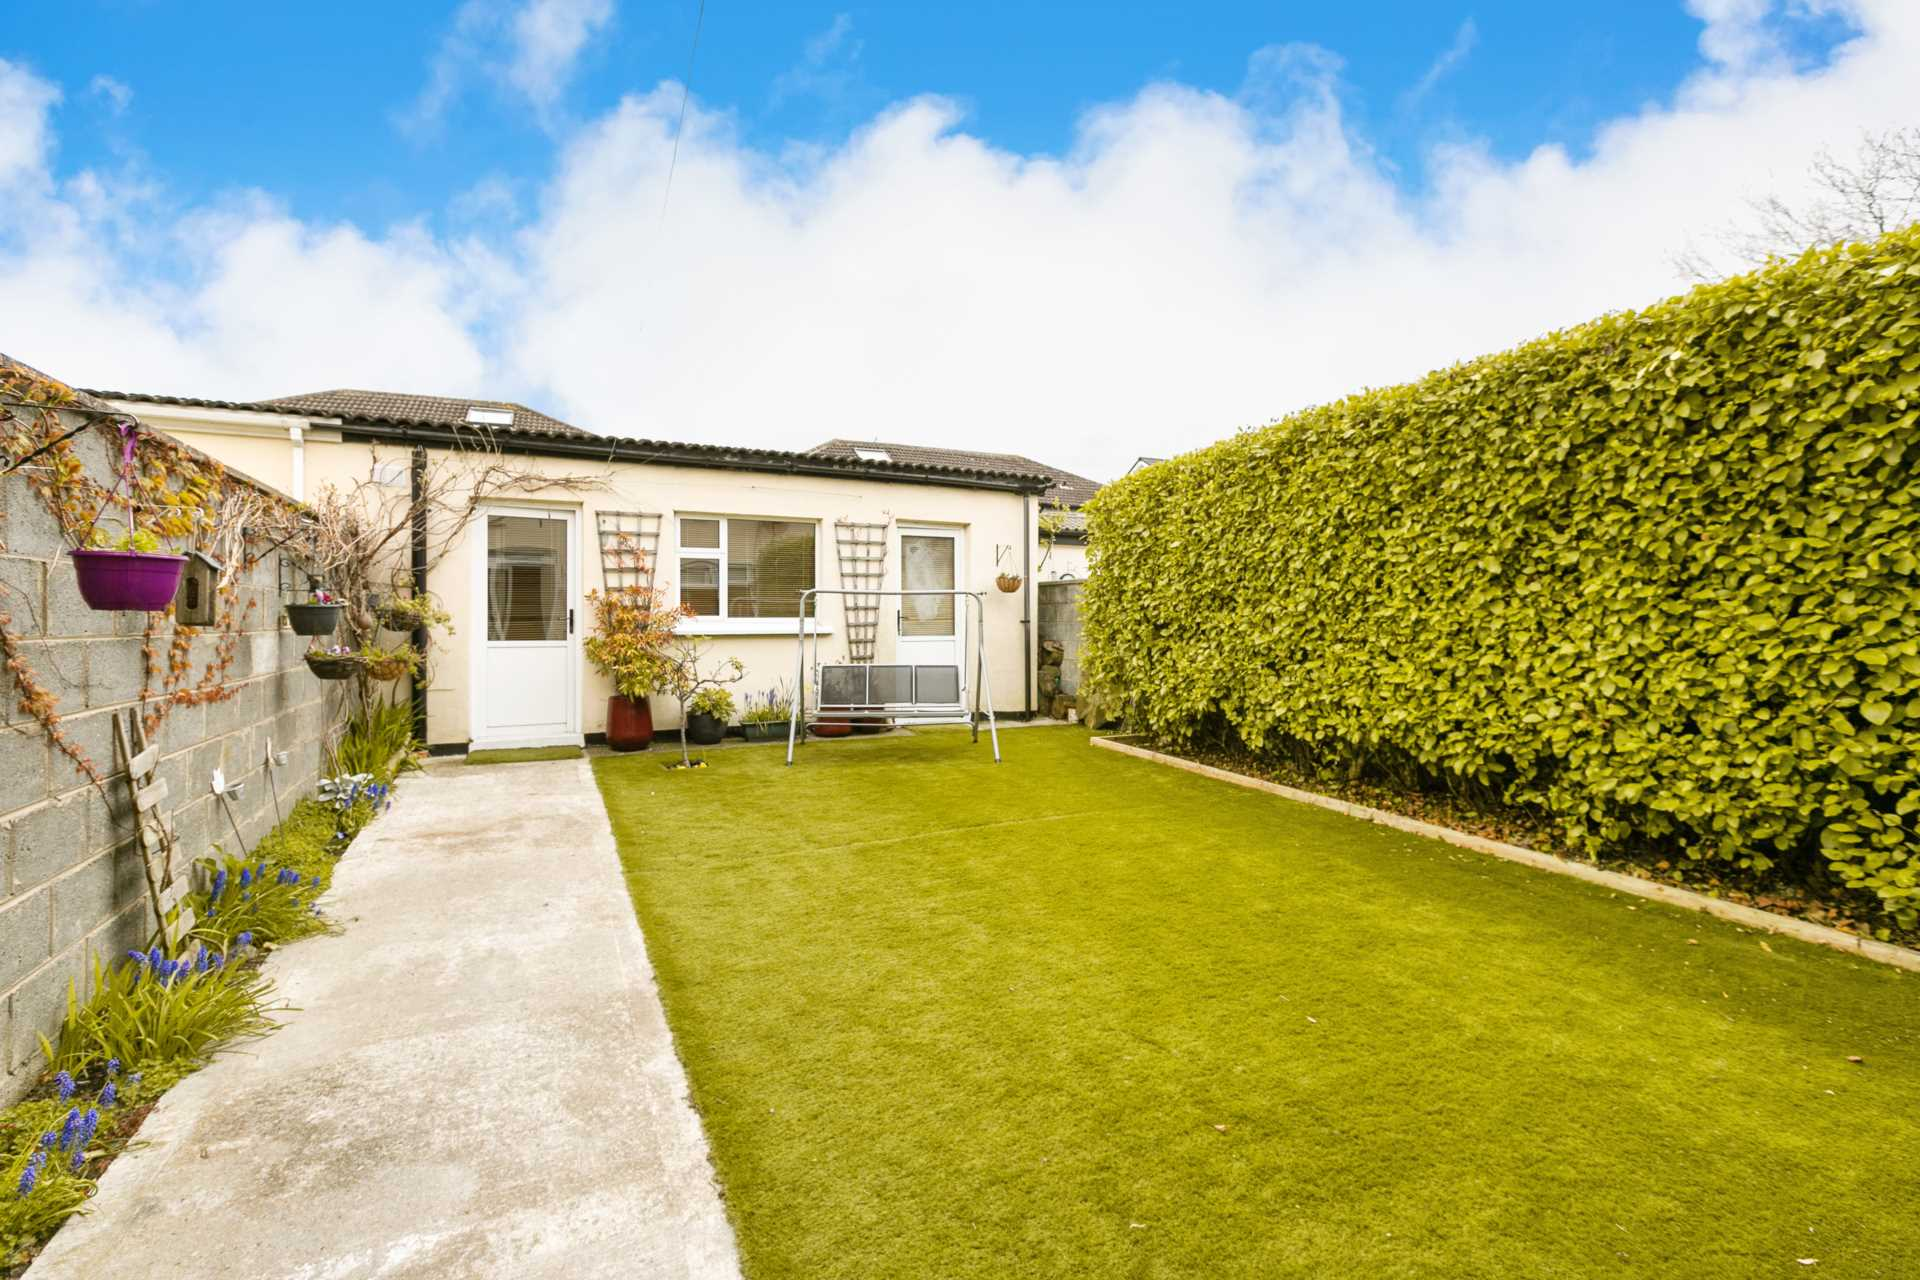 411 Orwell Park Drive, Templeogue, Dublin 6w, Image 14